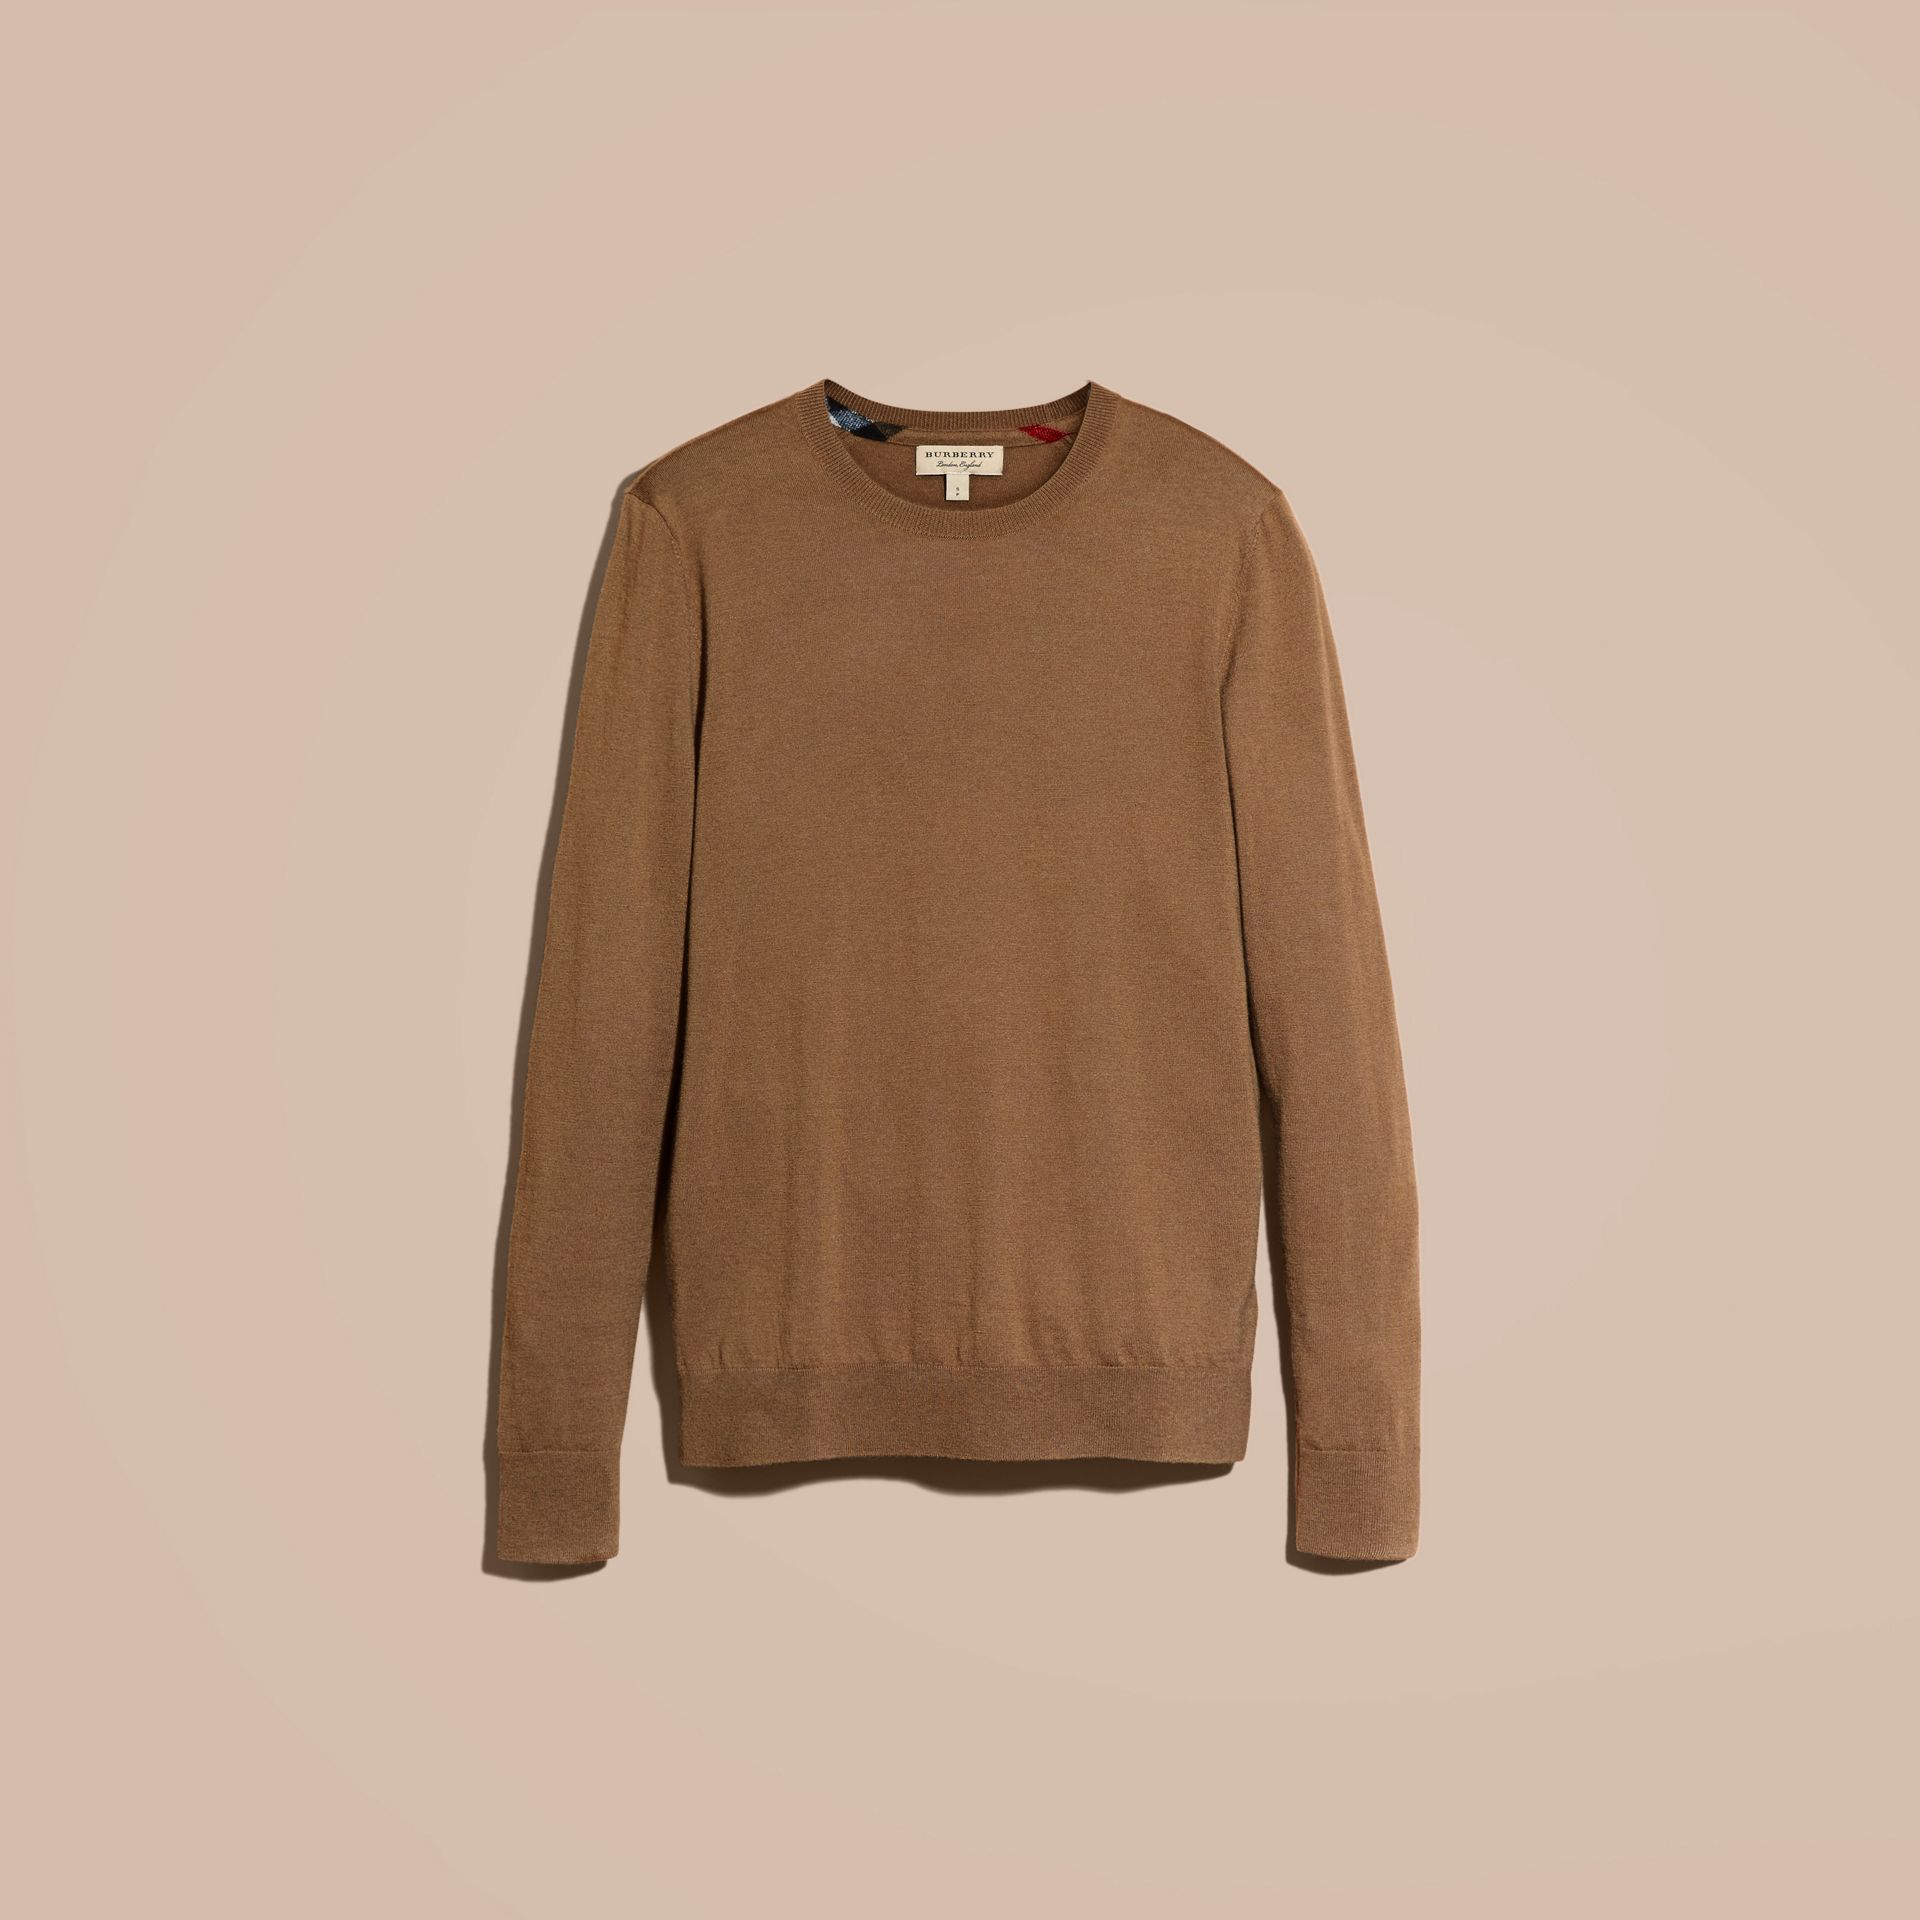 Camel Lightweight Crew Neck Cashmere Sweater with Check Trim Camel - gallery image 4